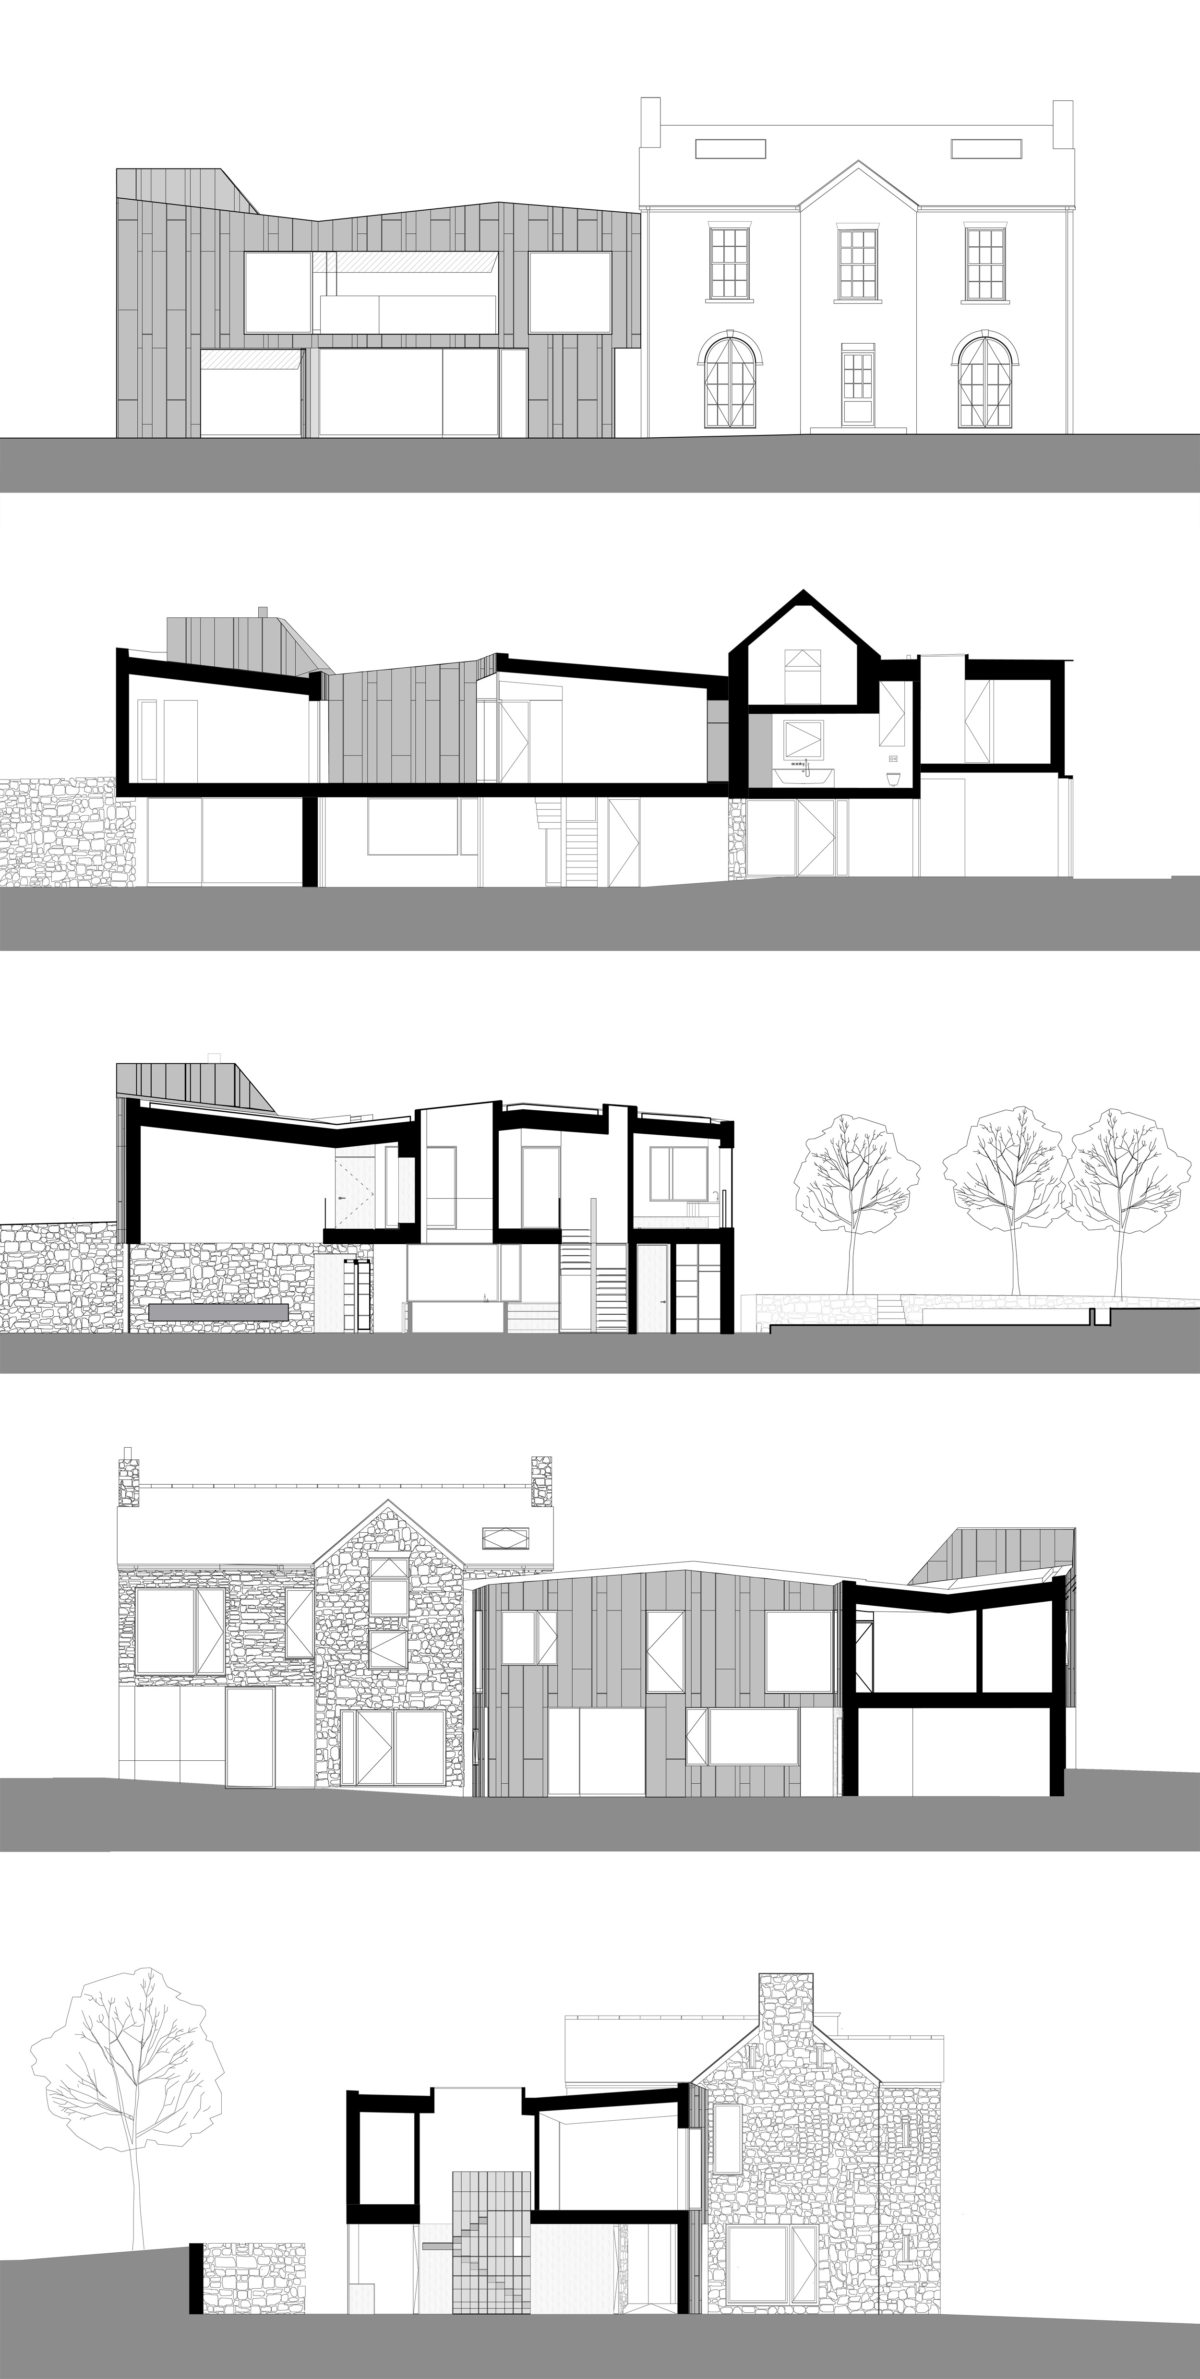 Alison Brooks Architects _ Windward House _ Sections 1